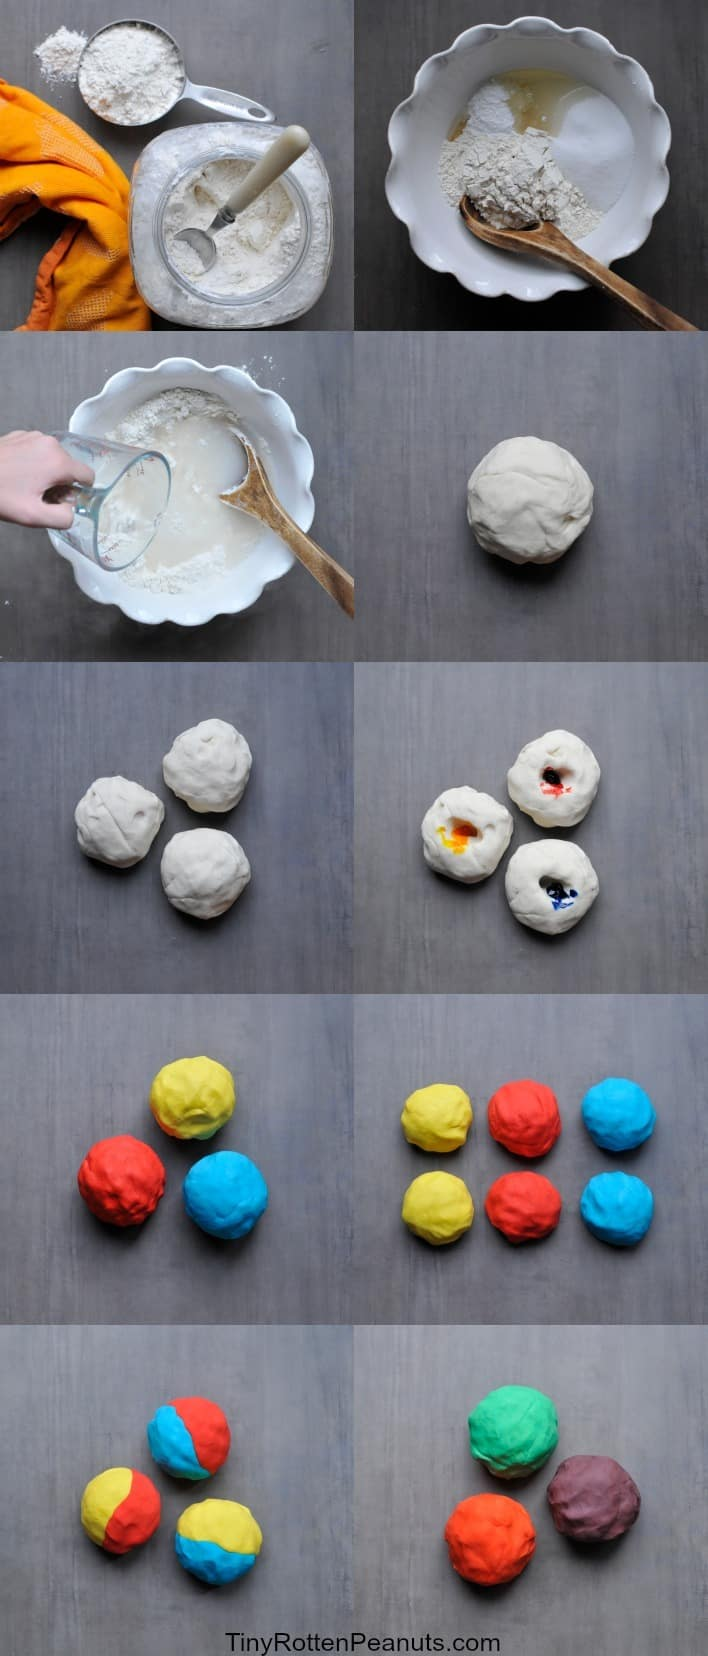 playdough color theory- mix up some easy playdough and teach your kids about color mixing at the same time